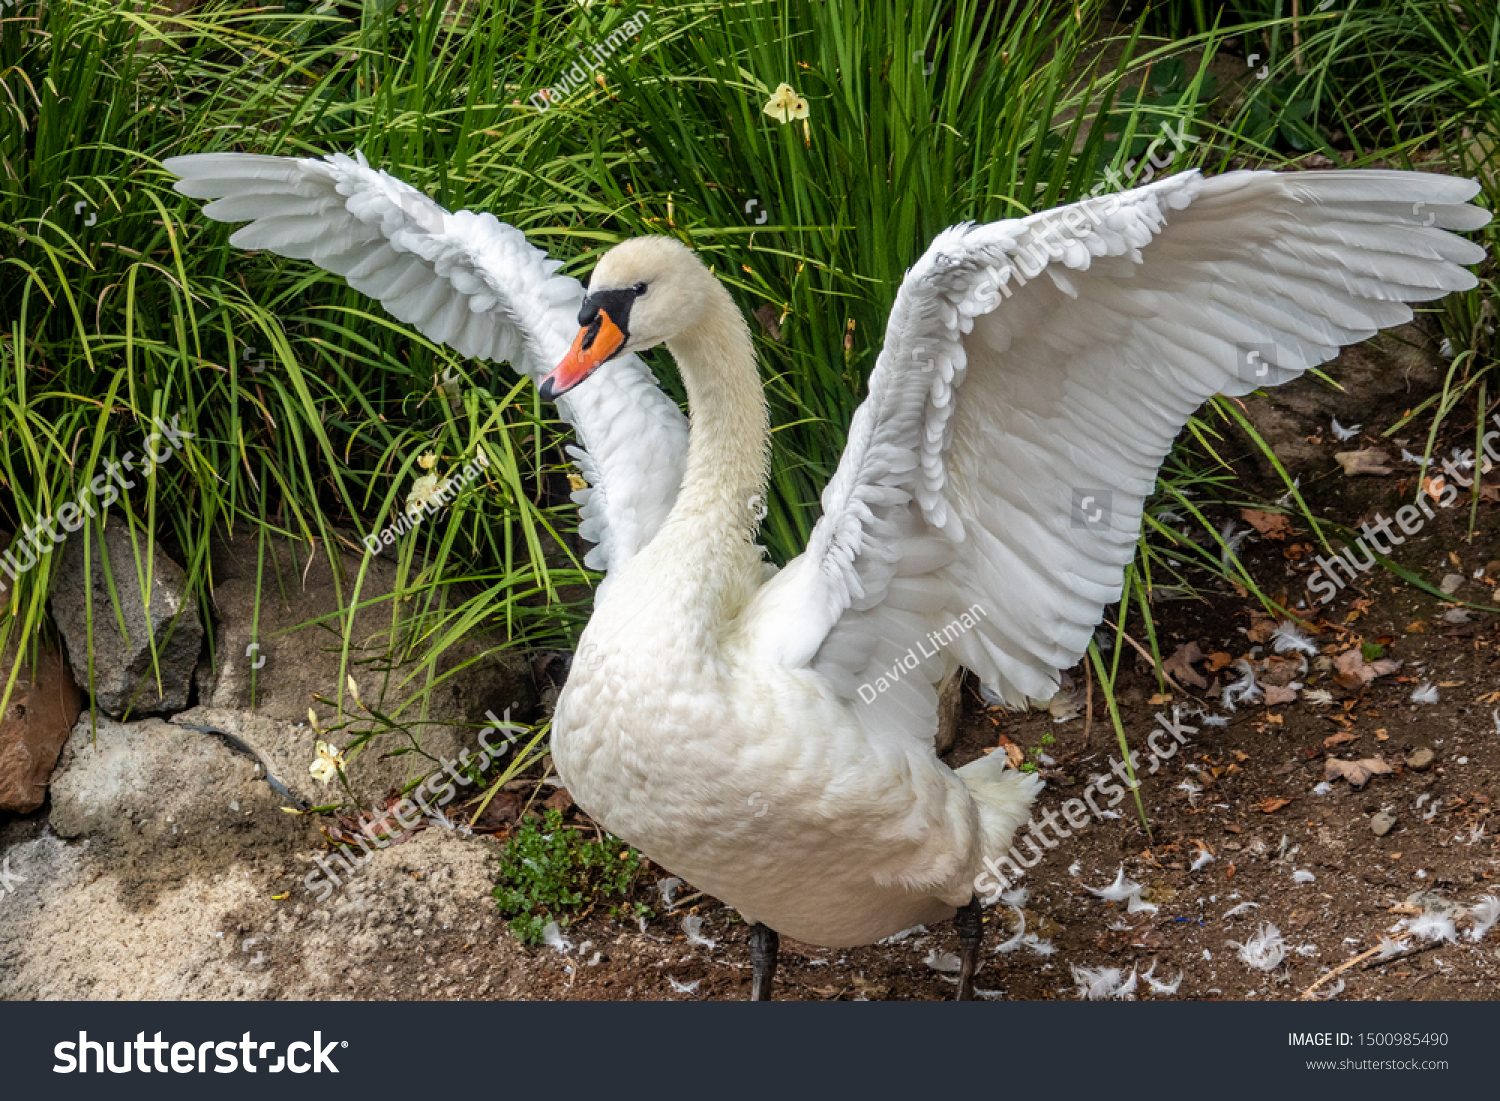 A Swan spreads its wings while stretching.